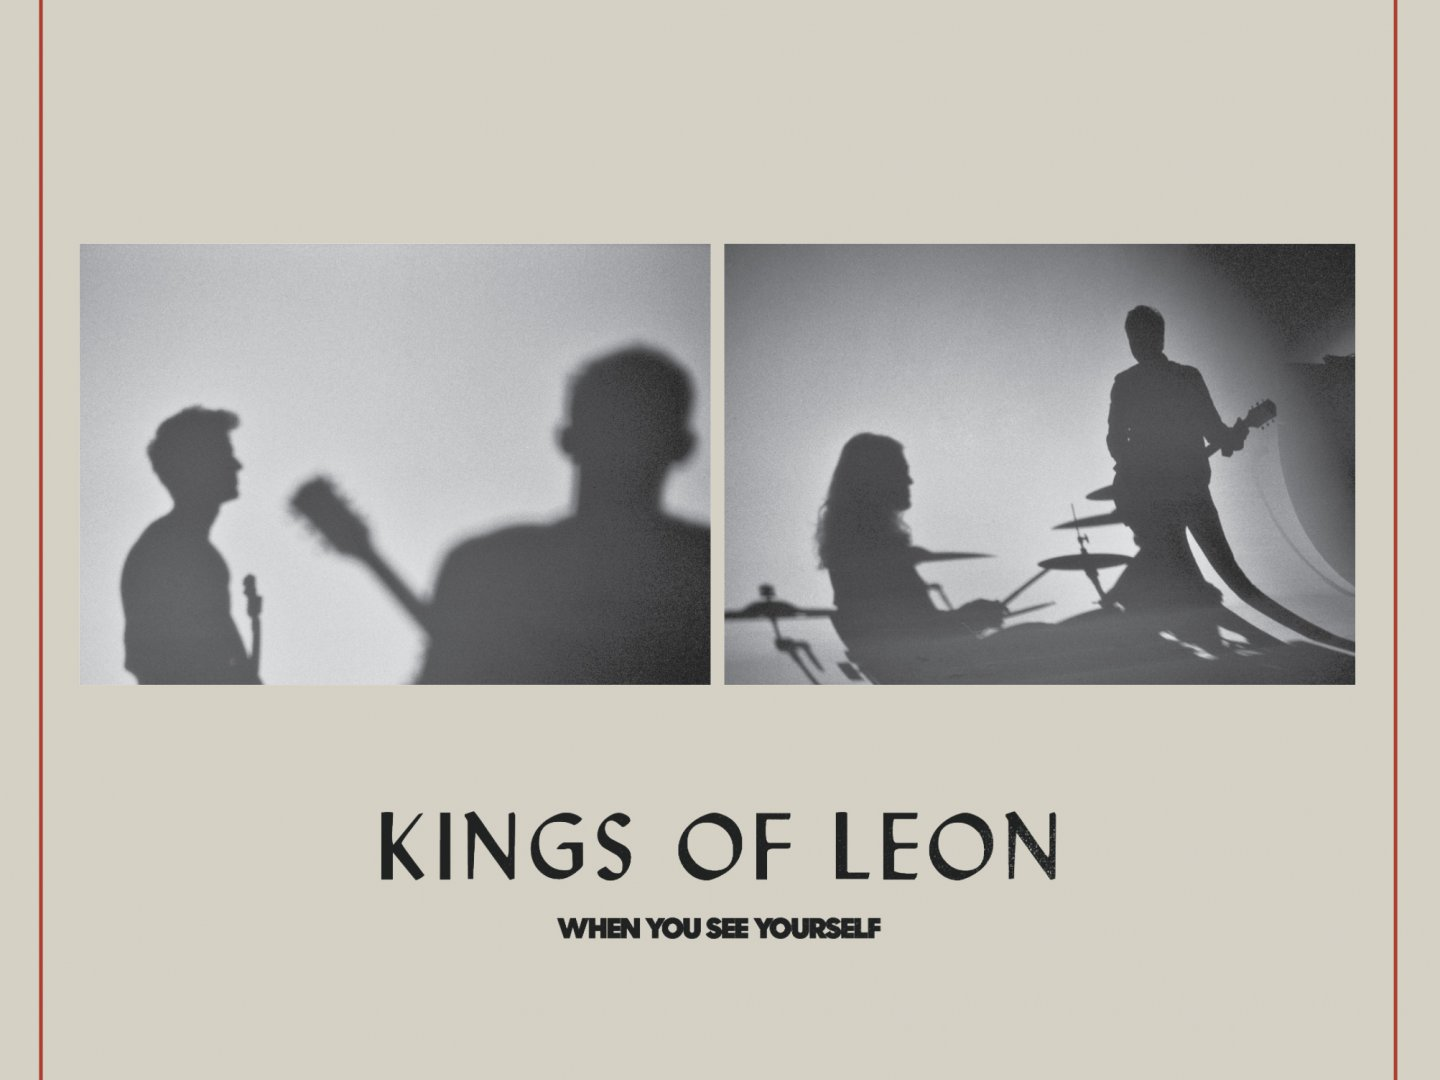 Kings of Leon When You See Yourself Album Announcement  Thumbnail